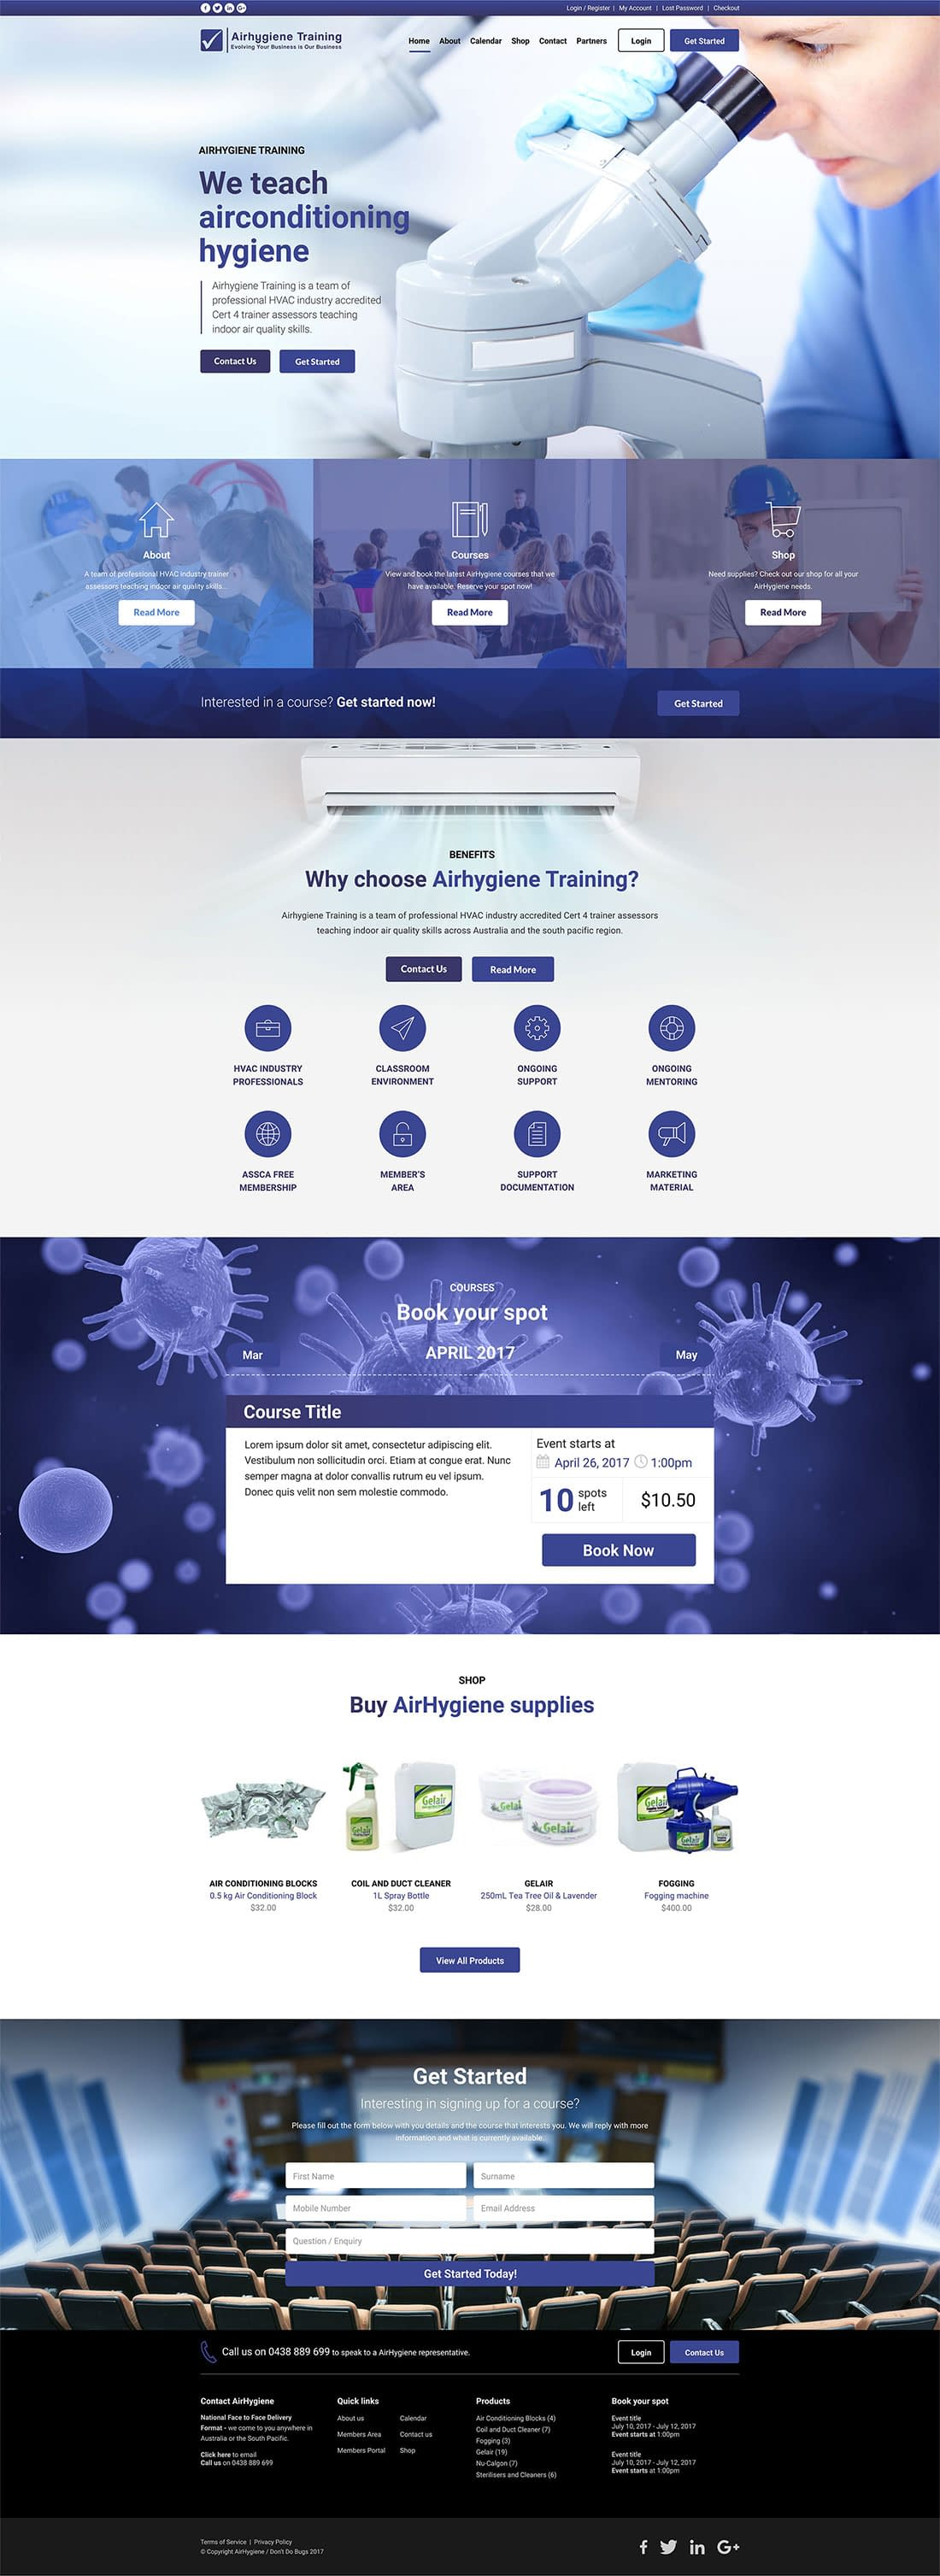 Airhygiene website home page